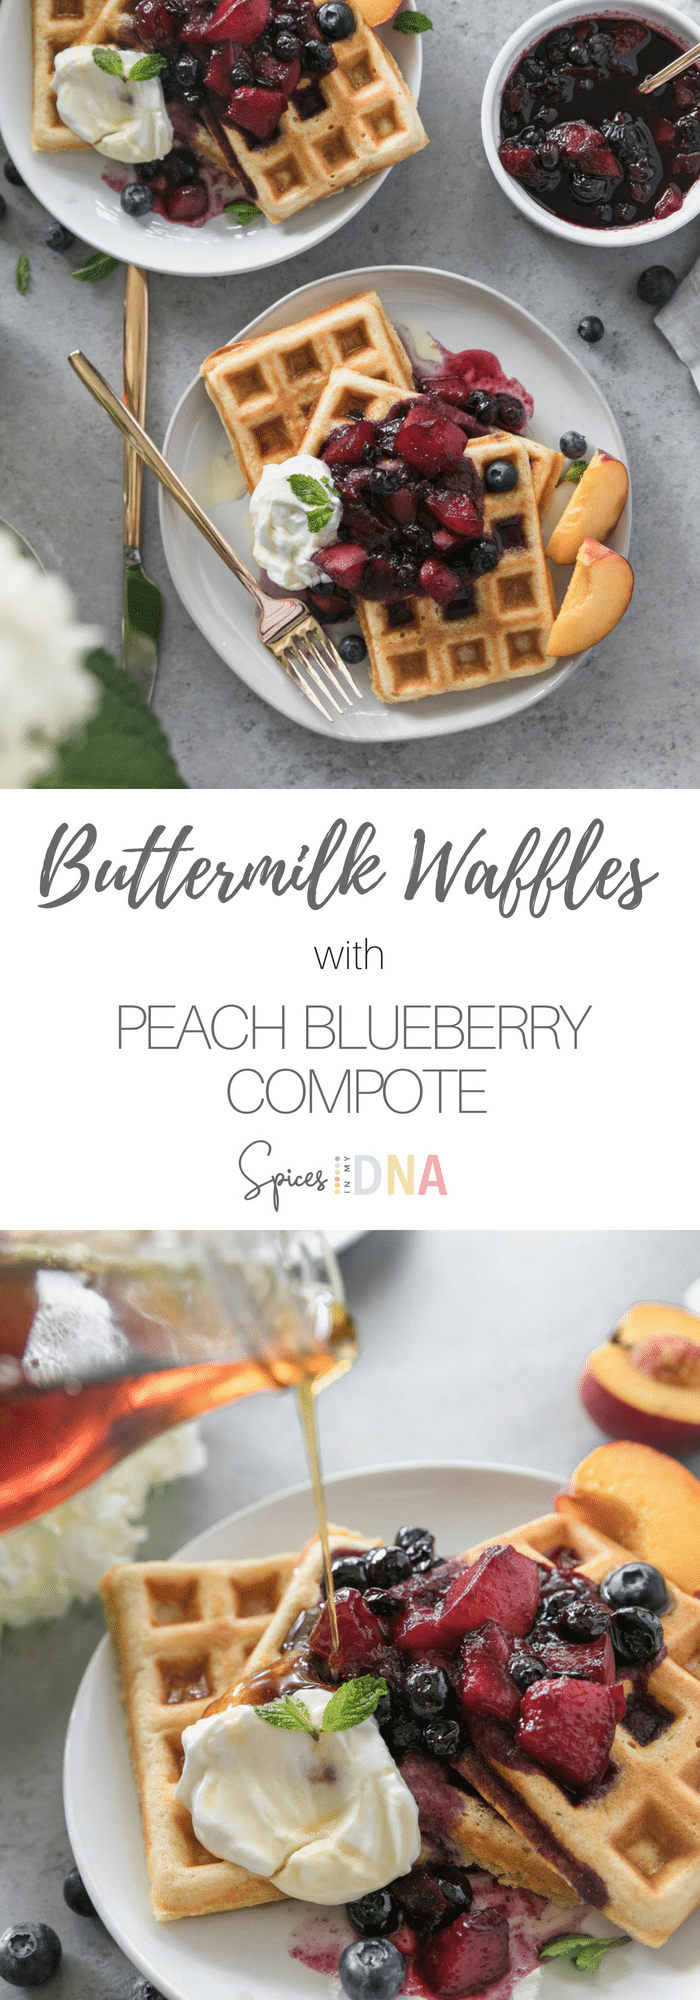 These Buttermilk Waffles with Peach Blueberry Compote are light, fluffy, and super easy to make! The peach blueberry compote is such a delicious summery topping, especially if you can find the juiciest peaches and freshest blueberries! An extra drizzle of maple syrup and a pat of butter puts these over the top! #brunch #waffles #buttermilk